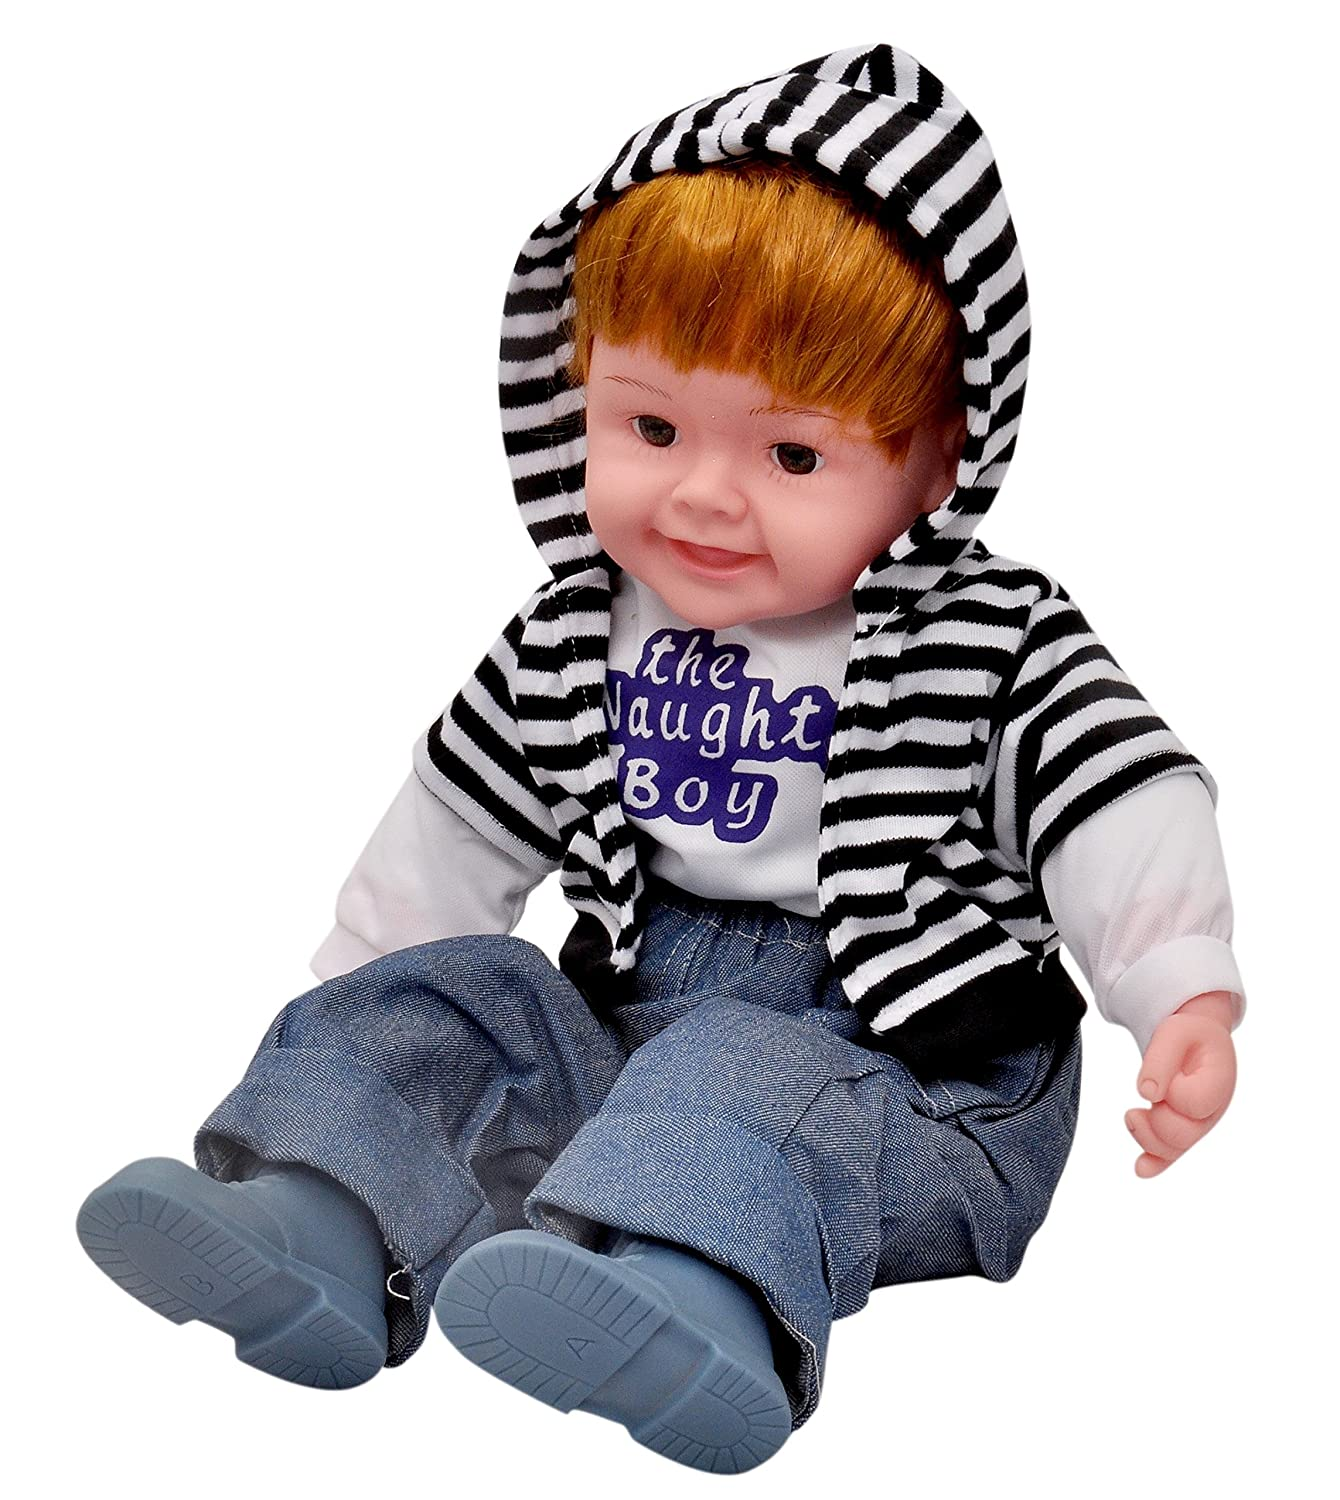 Baby Doll Buy Baby Doll online at best prices in India Amazon